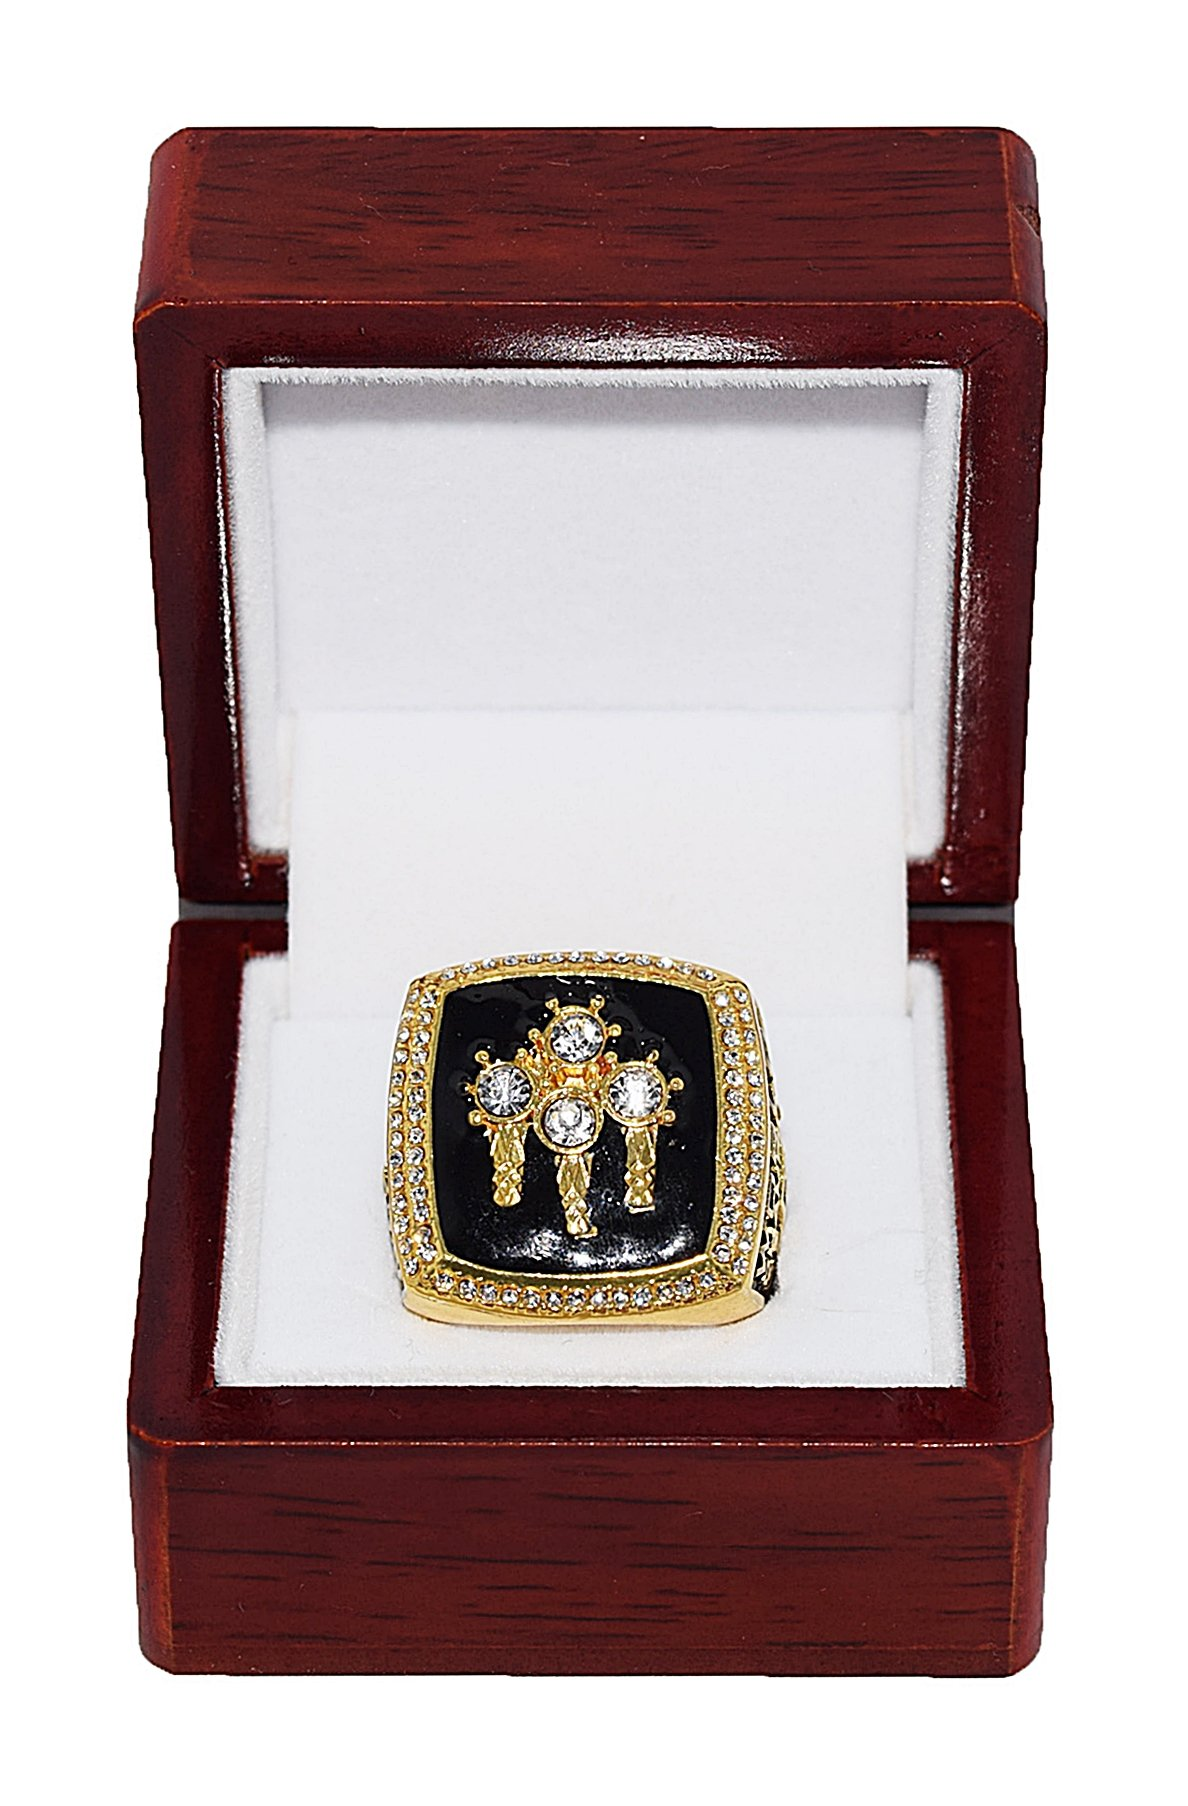 CHICAGO BULLS (Michael Jordan) 1996 NBA FINALS WORLD CHAMPIONS (72 Wins. Greatest Team Ever) Rare & Collectible High Quality Replica NBA Basketball Championship Ring with Cherrywood Display Box